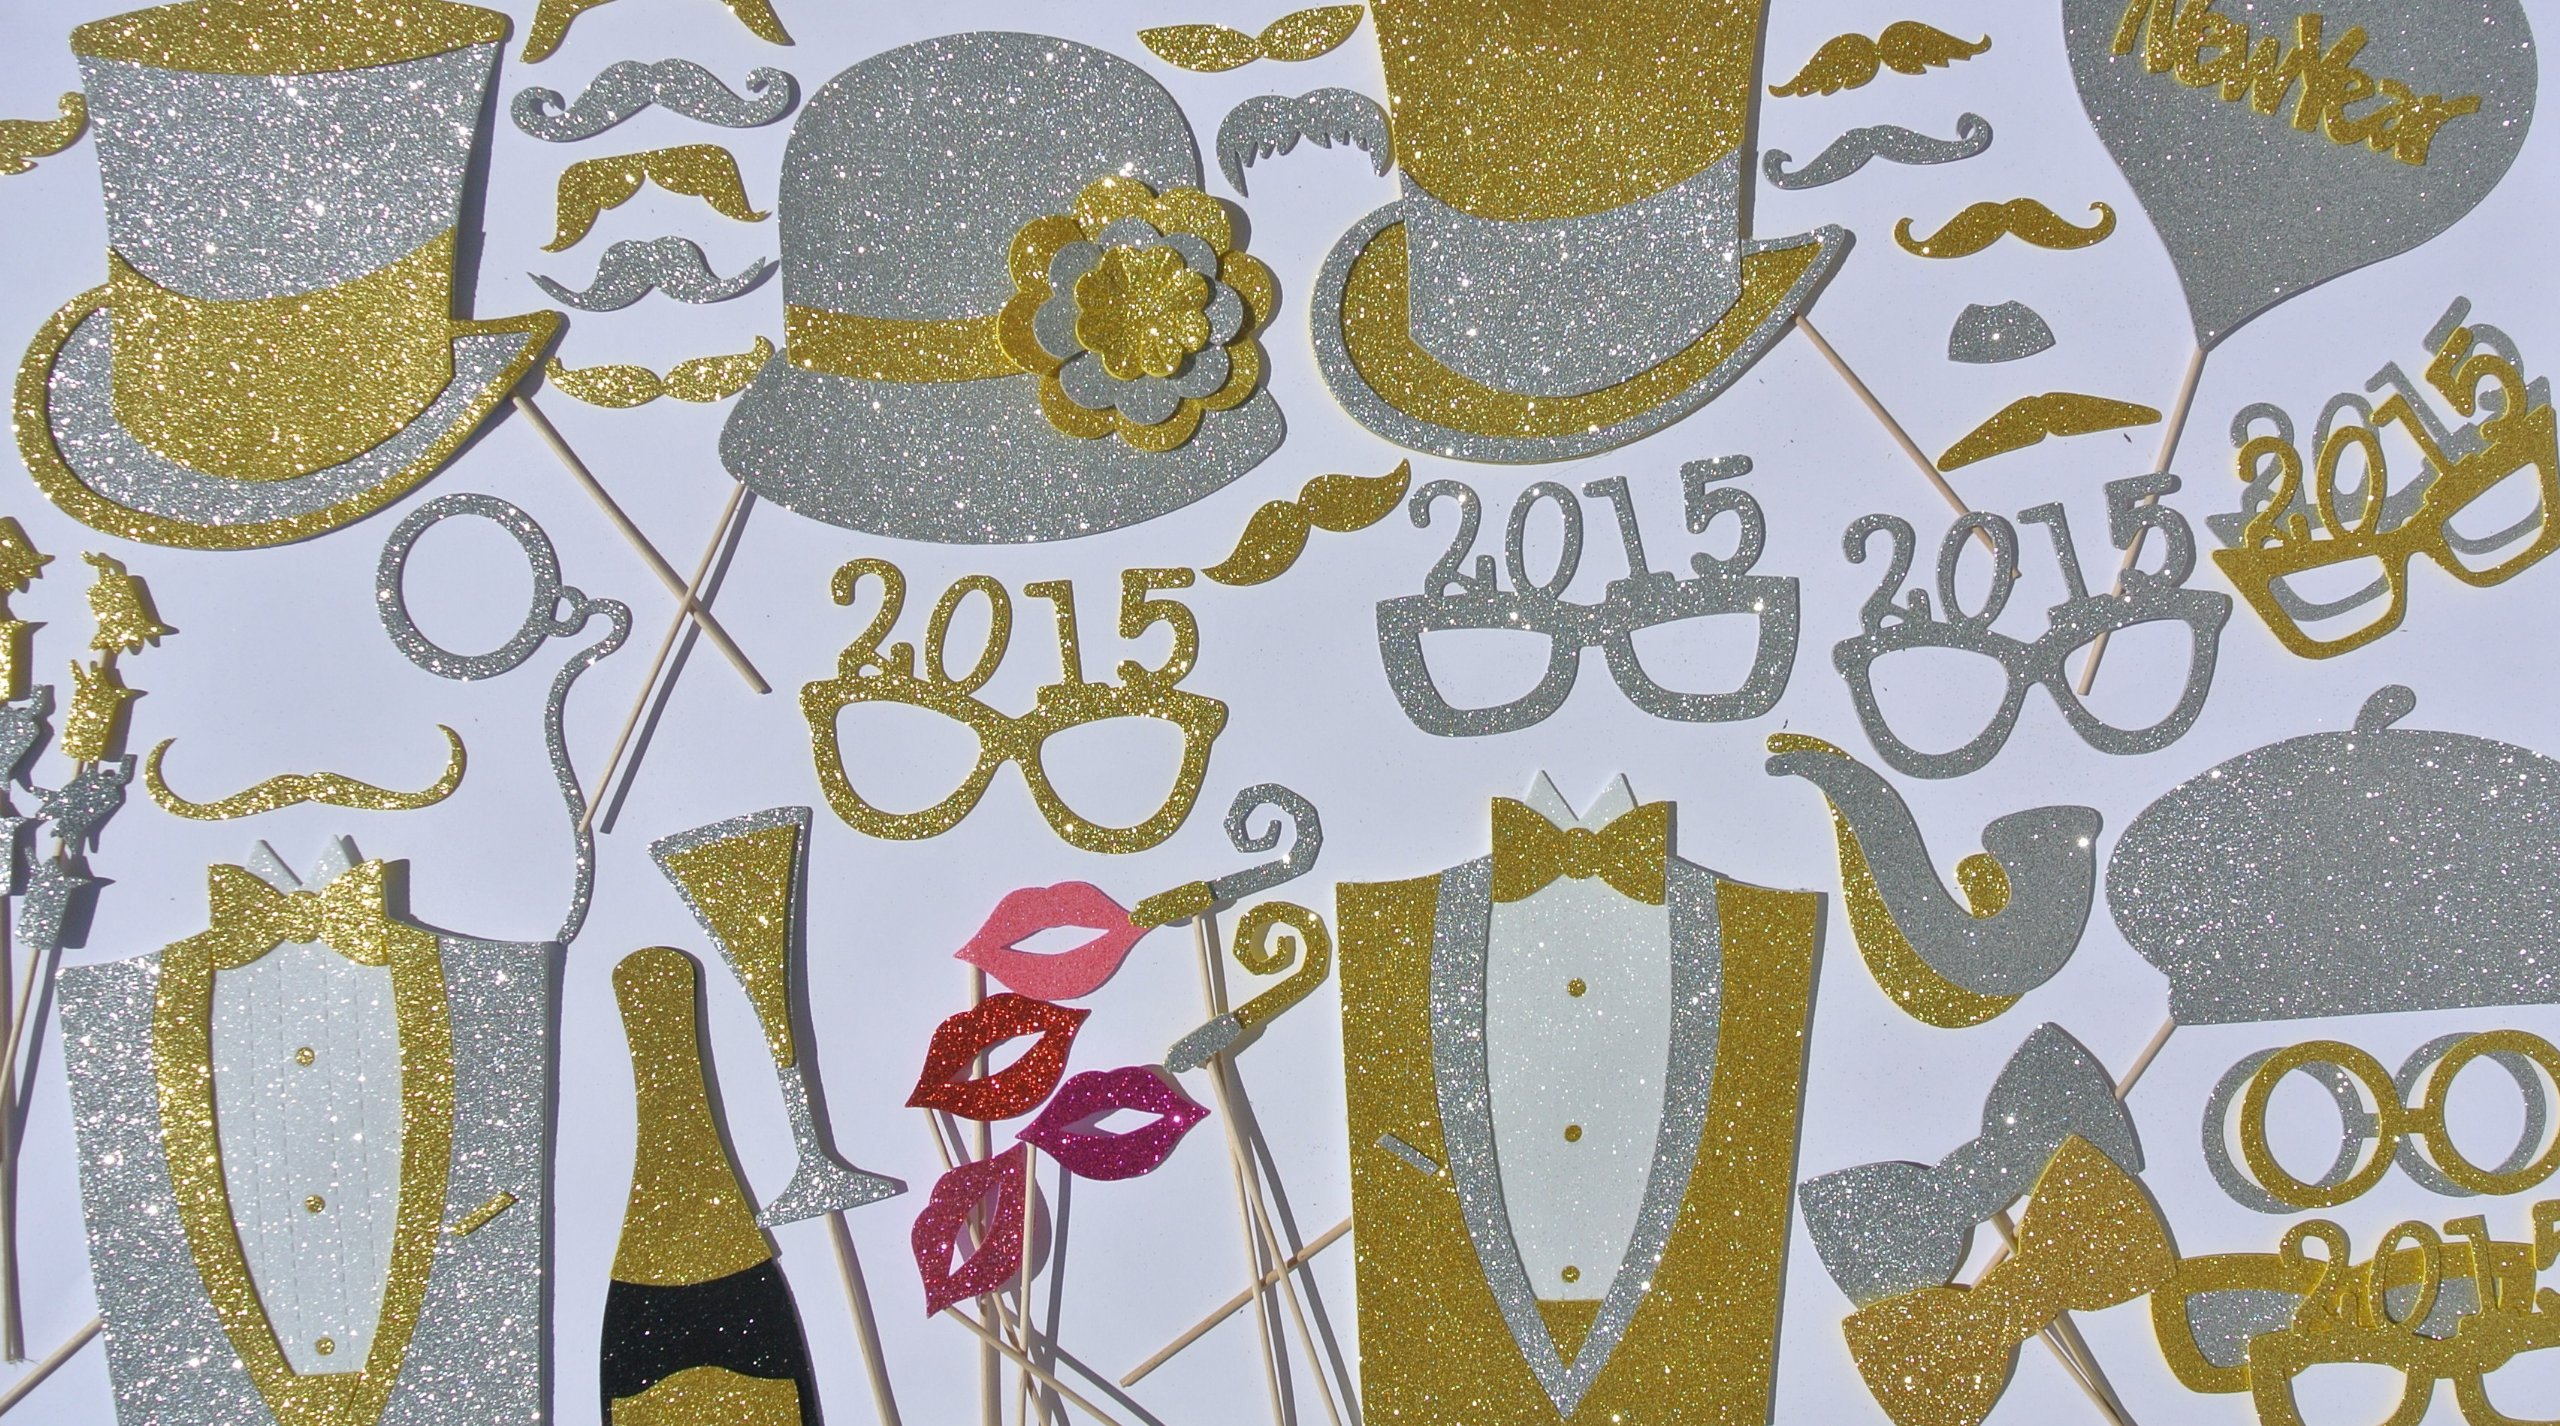 New Years 2015 Glasses Photo Booth Props 69 Party Favors by PICWRAP